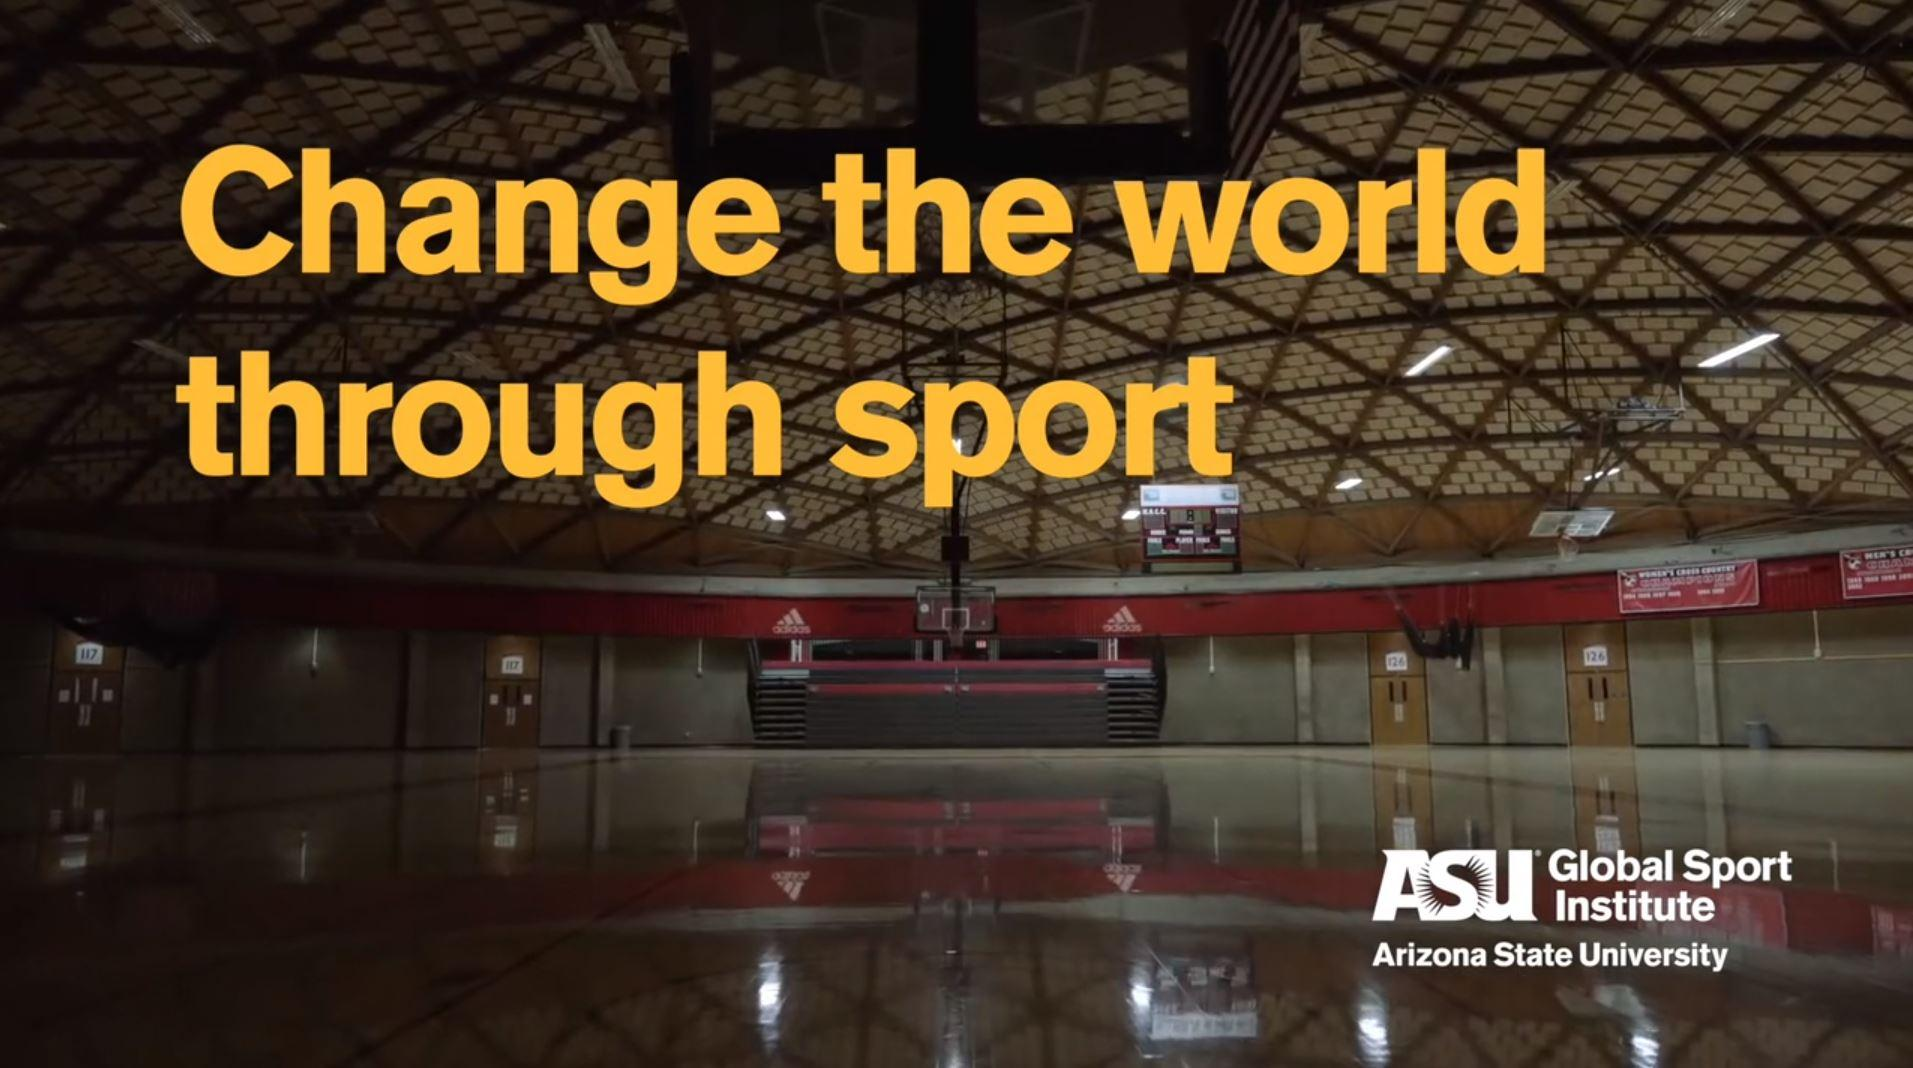 Changing the world through sport